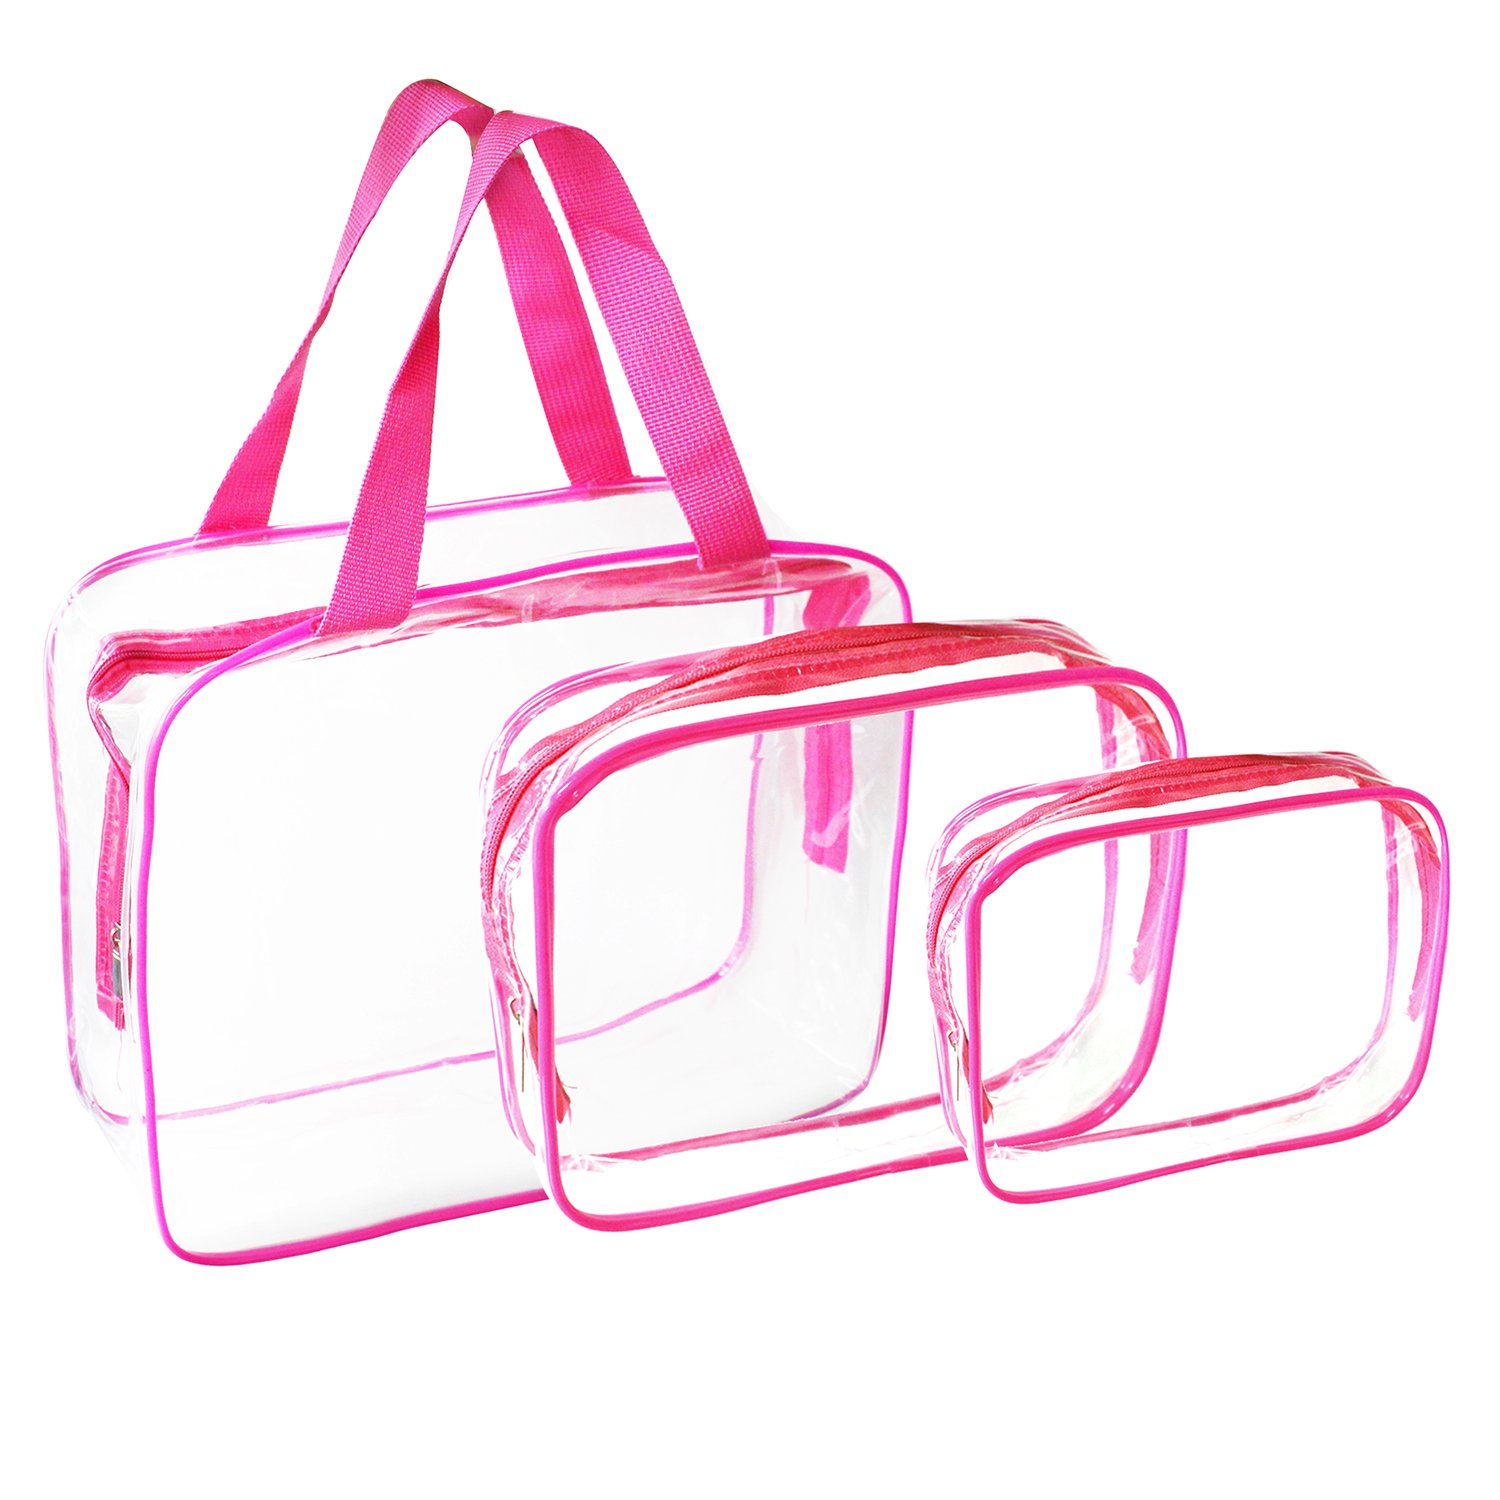 3 Pack Clear Makeup Bag, Waterproof PVC Transparent Travel Cosmetic Bag Portable Hand Pouch Toiletry Organizer Set with Zipper for Women Men Pink